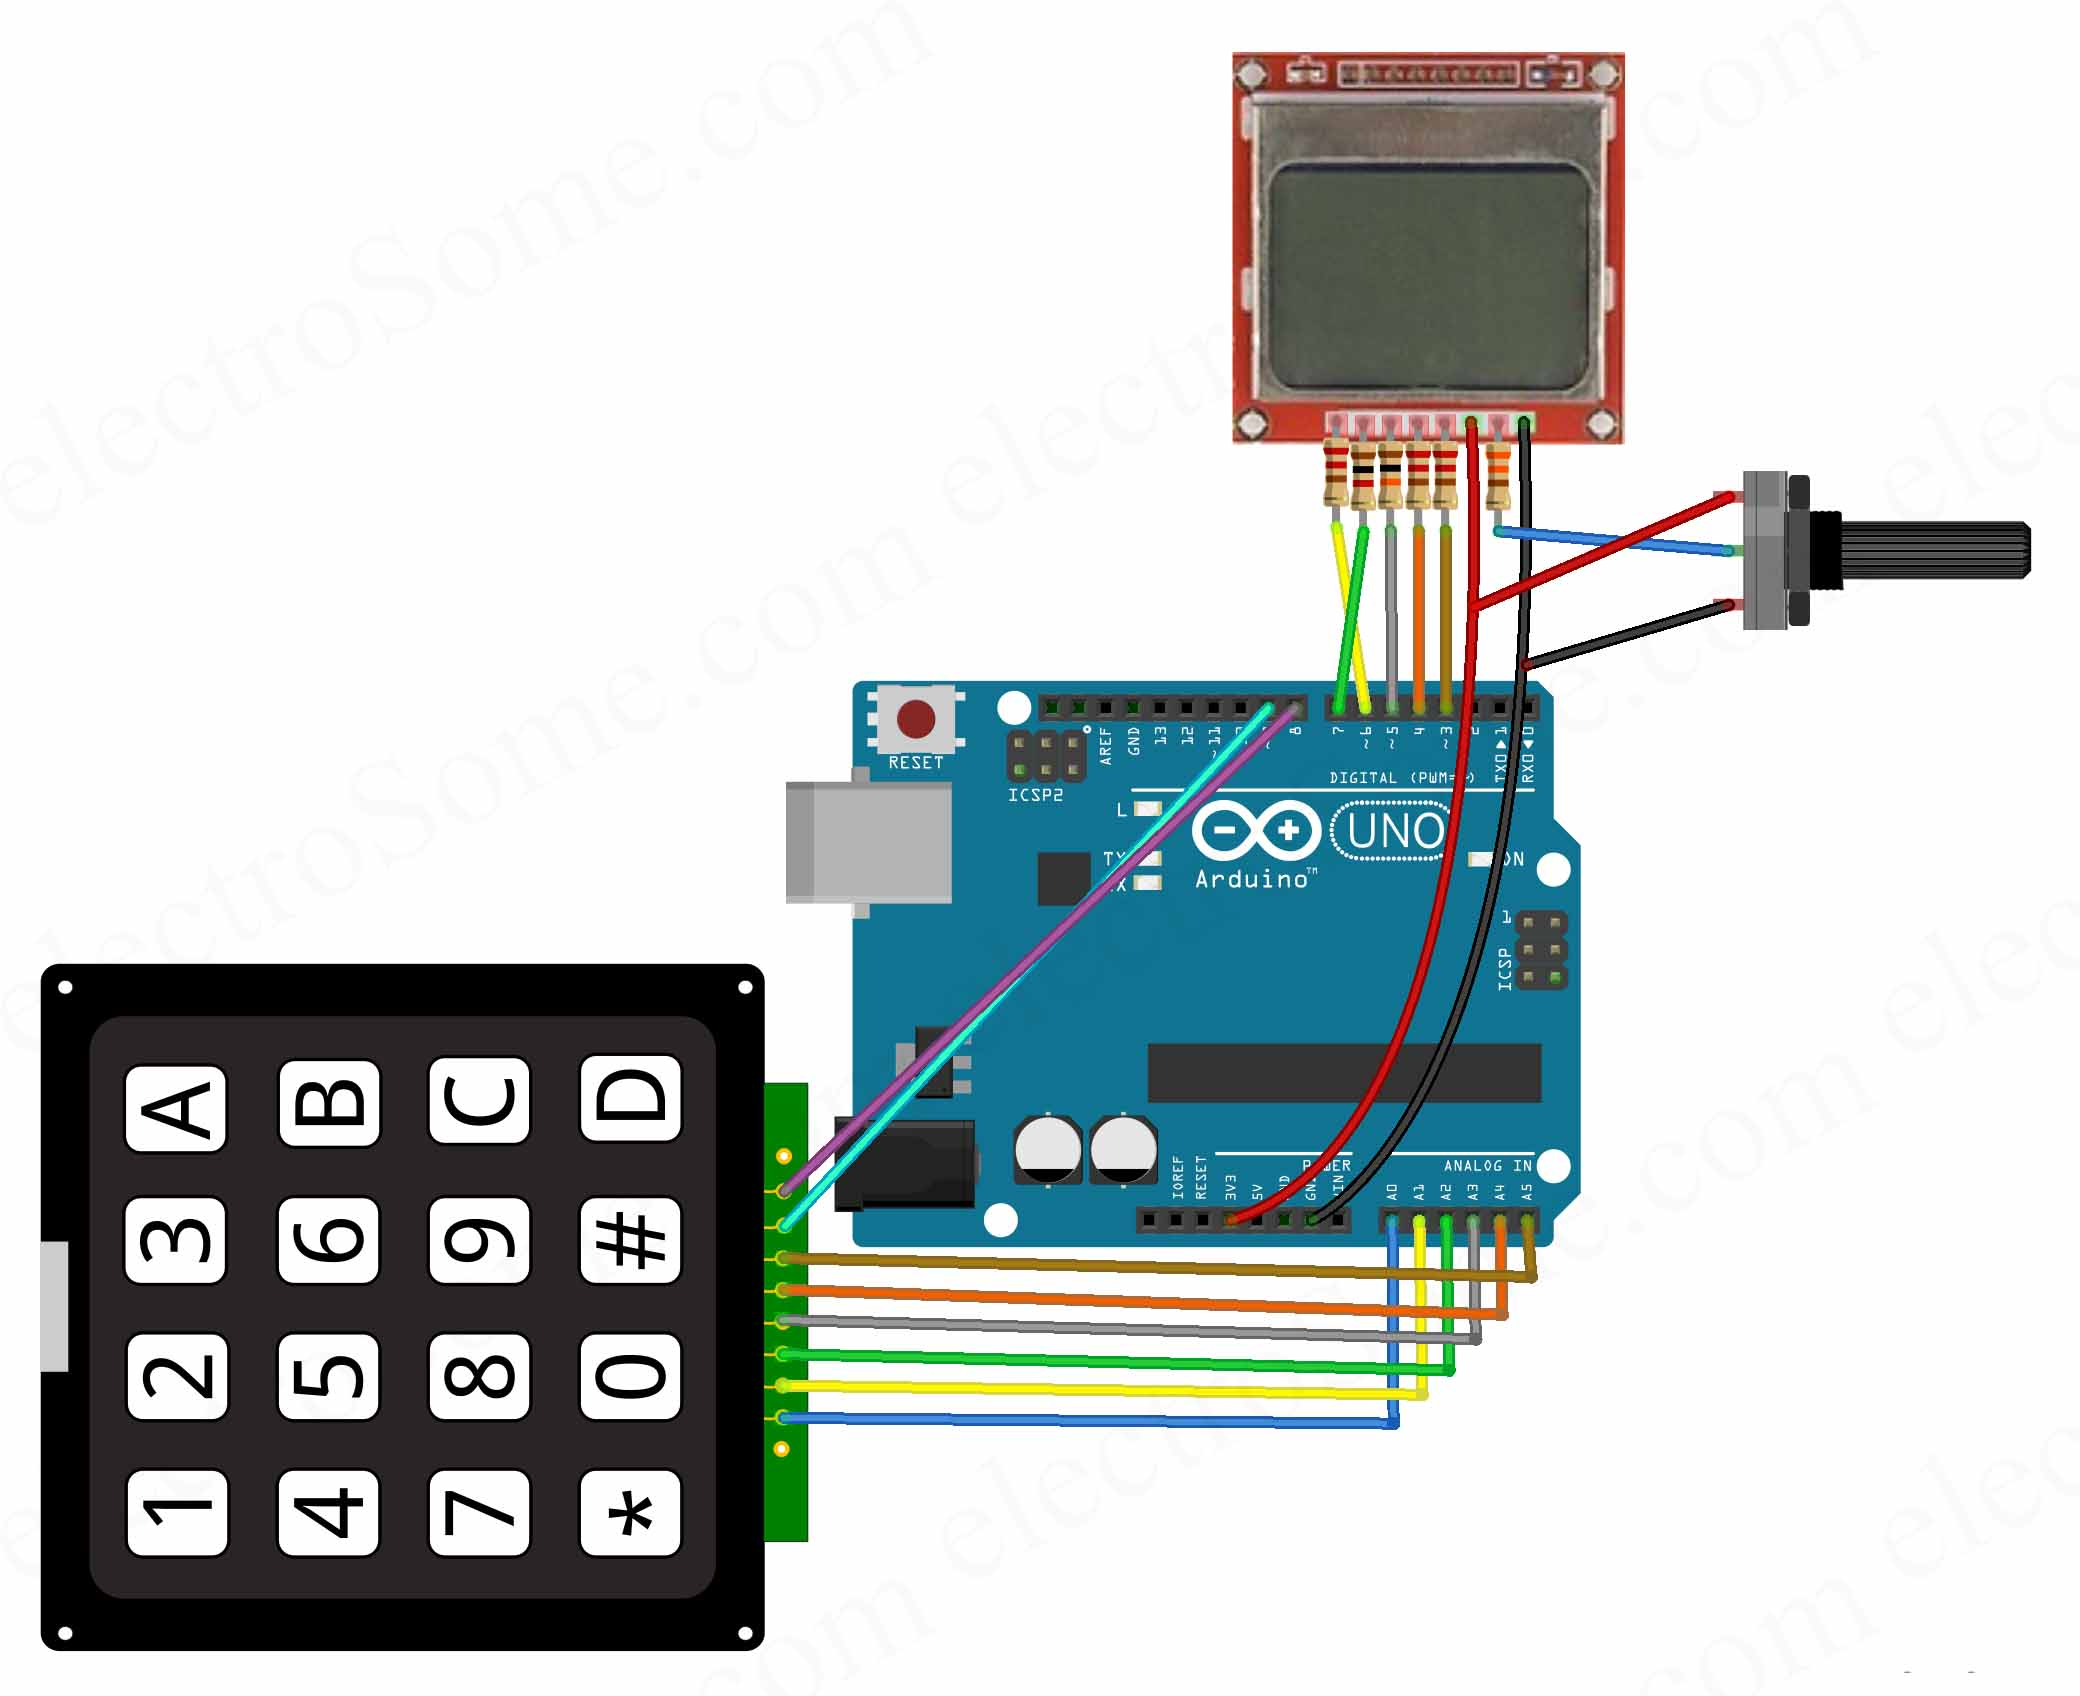 Calculator Using Arduino Uno Hobby Project Circuit Diagram Diagrams Circuits Projects Electronics Parts